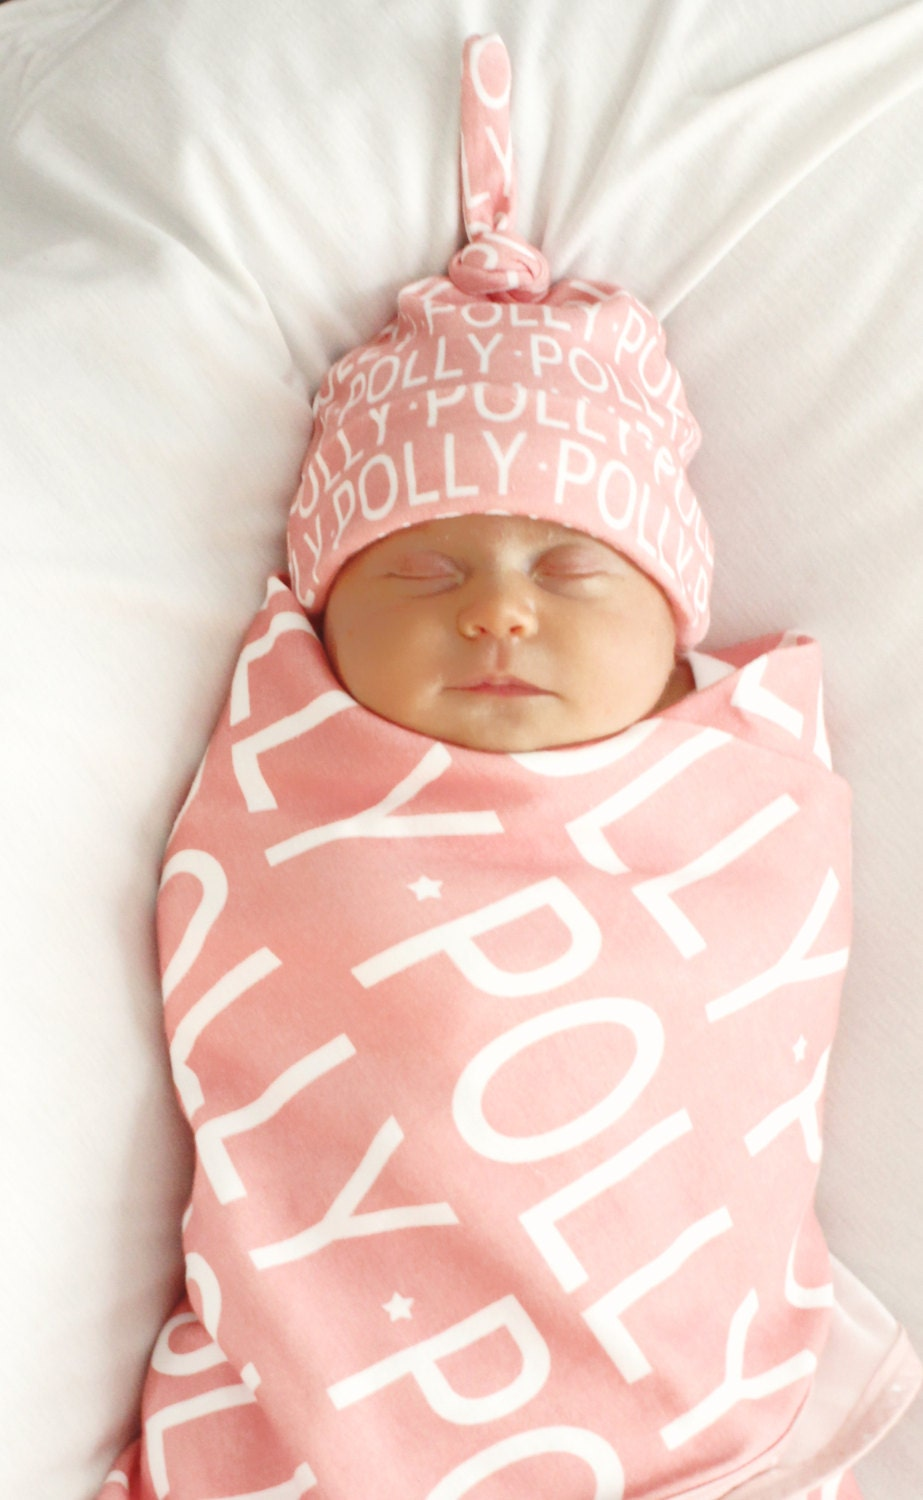 Personalized baby blanket and hat set organic knit swaddle personalized baby blanket and hat set organic knit swaddle petunias name baby blanket shower gift birth announcement photo prop newborn negle Image collections